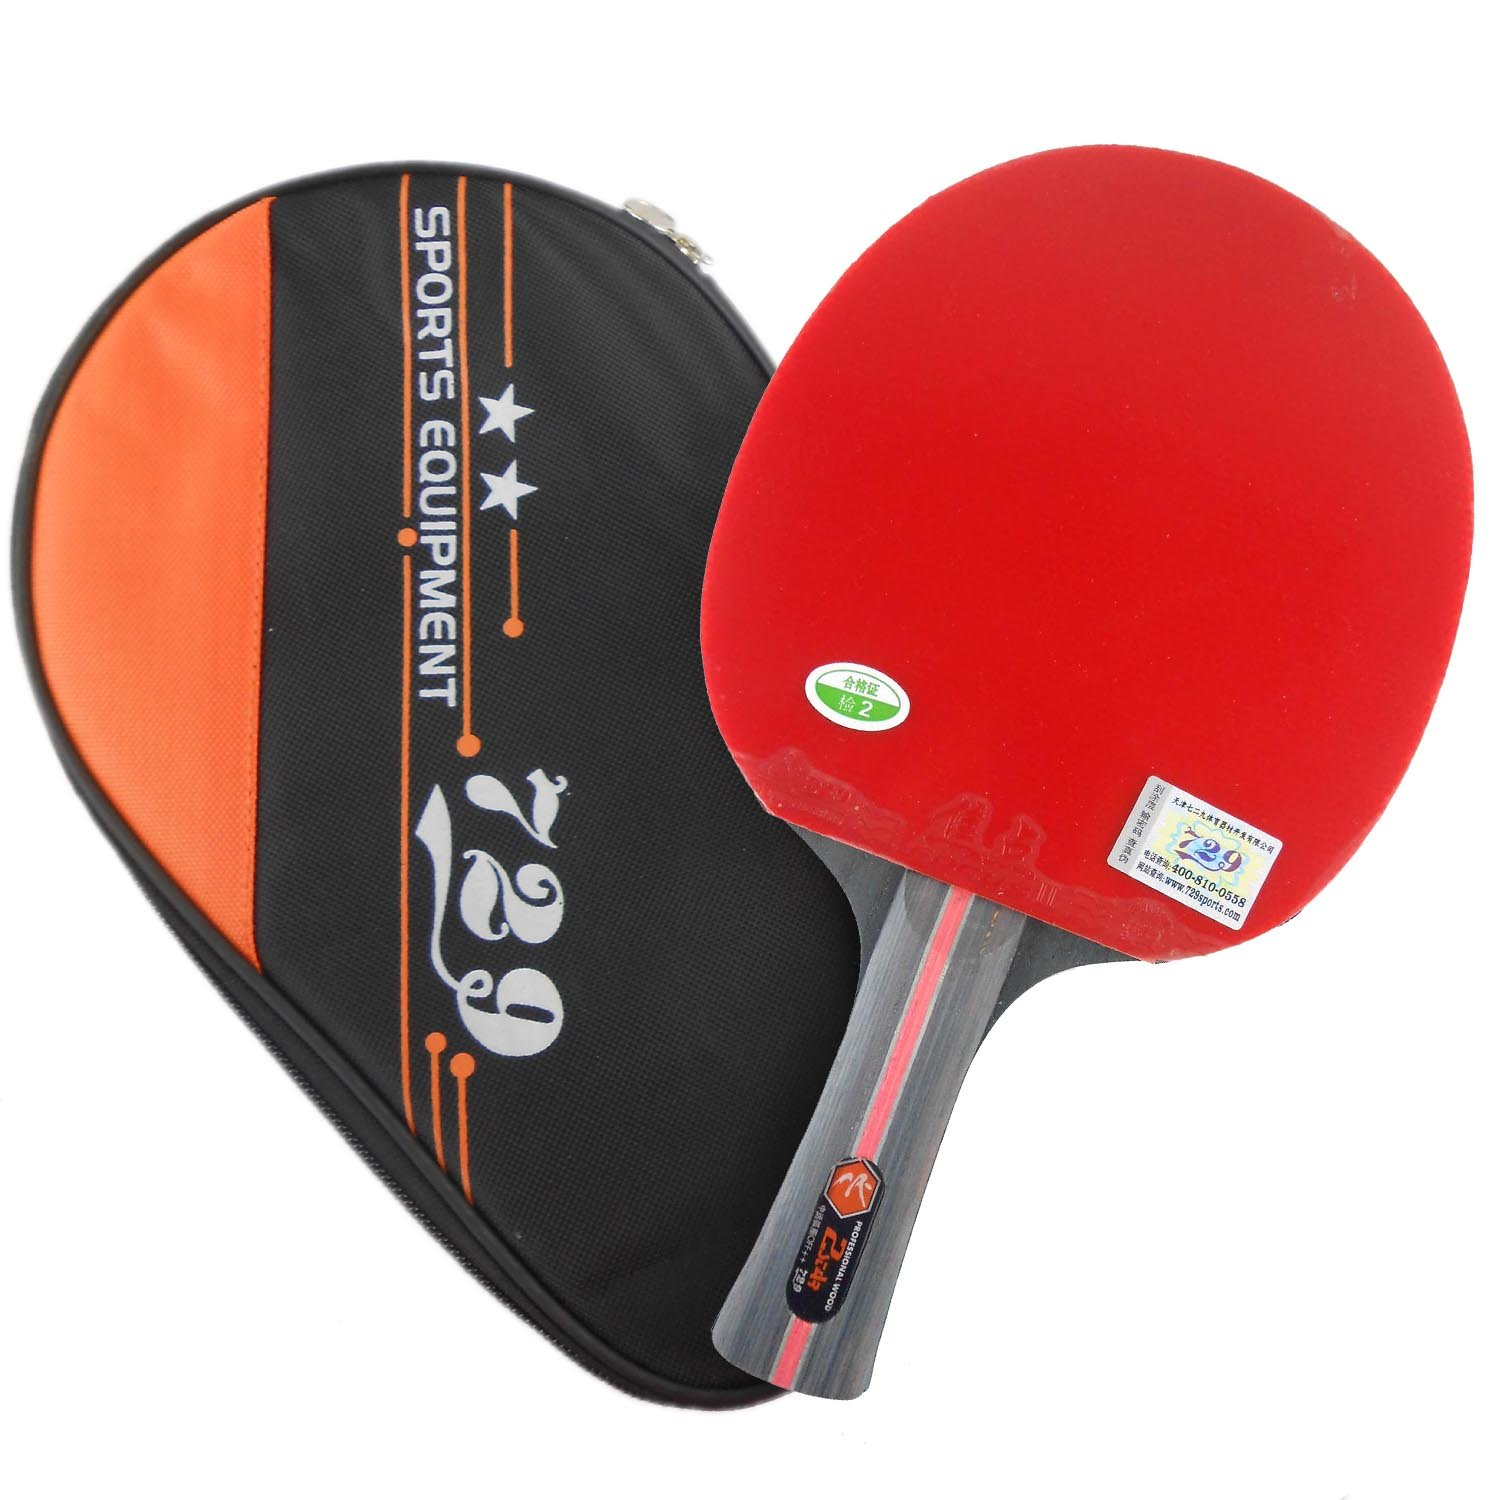 729 Friendship 2-star FL Pips in Table Tennis Racket withケース B00S4L8JQ4